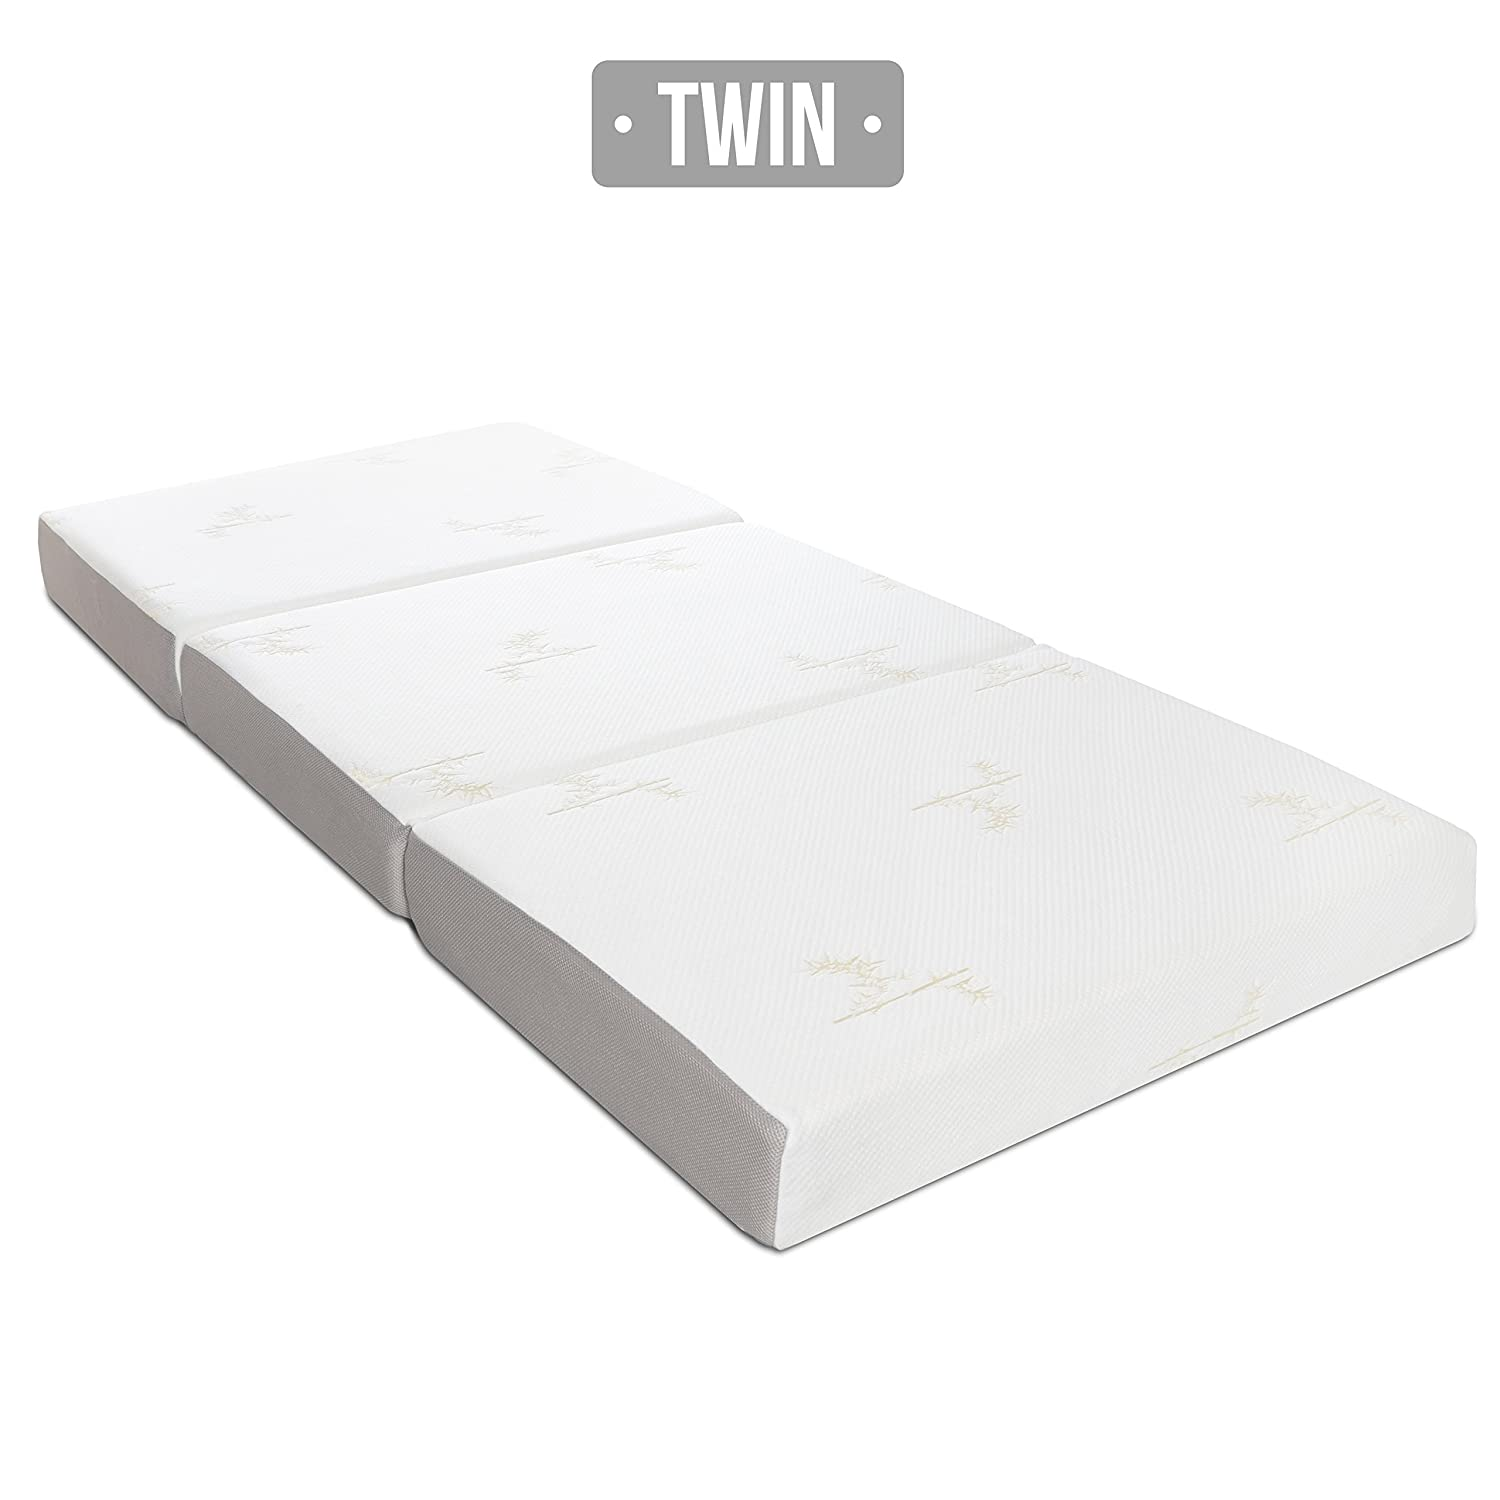 Very Simple Tri Fold Futon Mattress Amazon.com: Milliard 6-Inch Memory Foam Tri-fold Mattress with Ultra Soft  Removable Cover with Non-Slip Bottom - Twin: Kitchen u0026 Dining